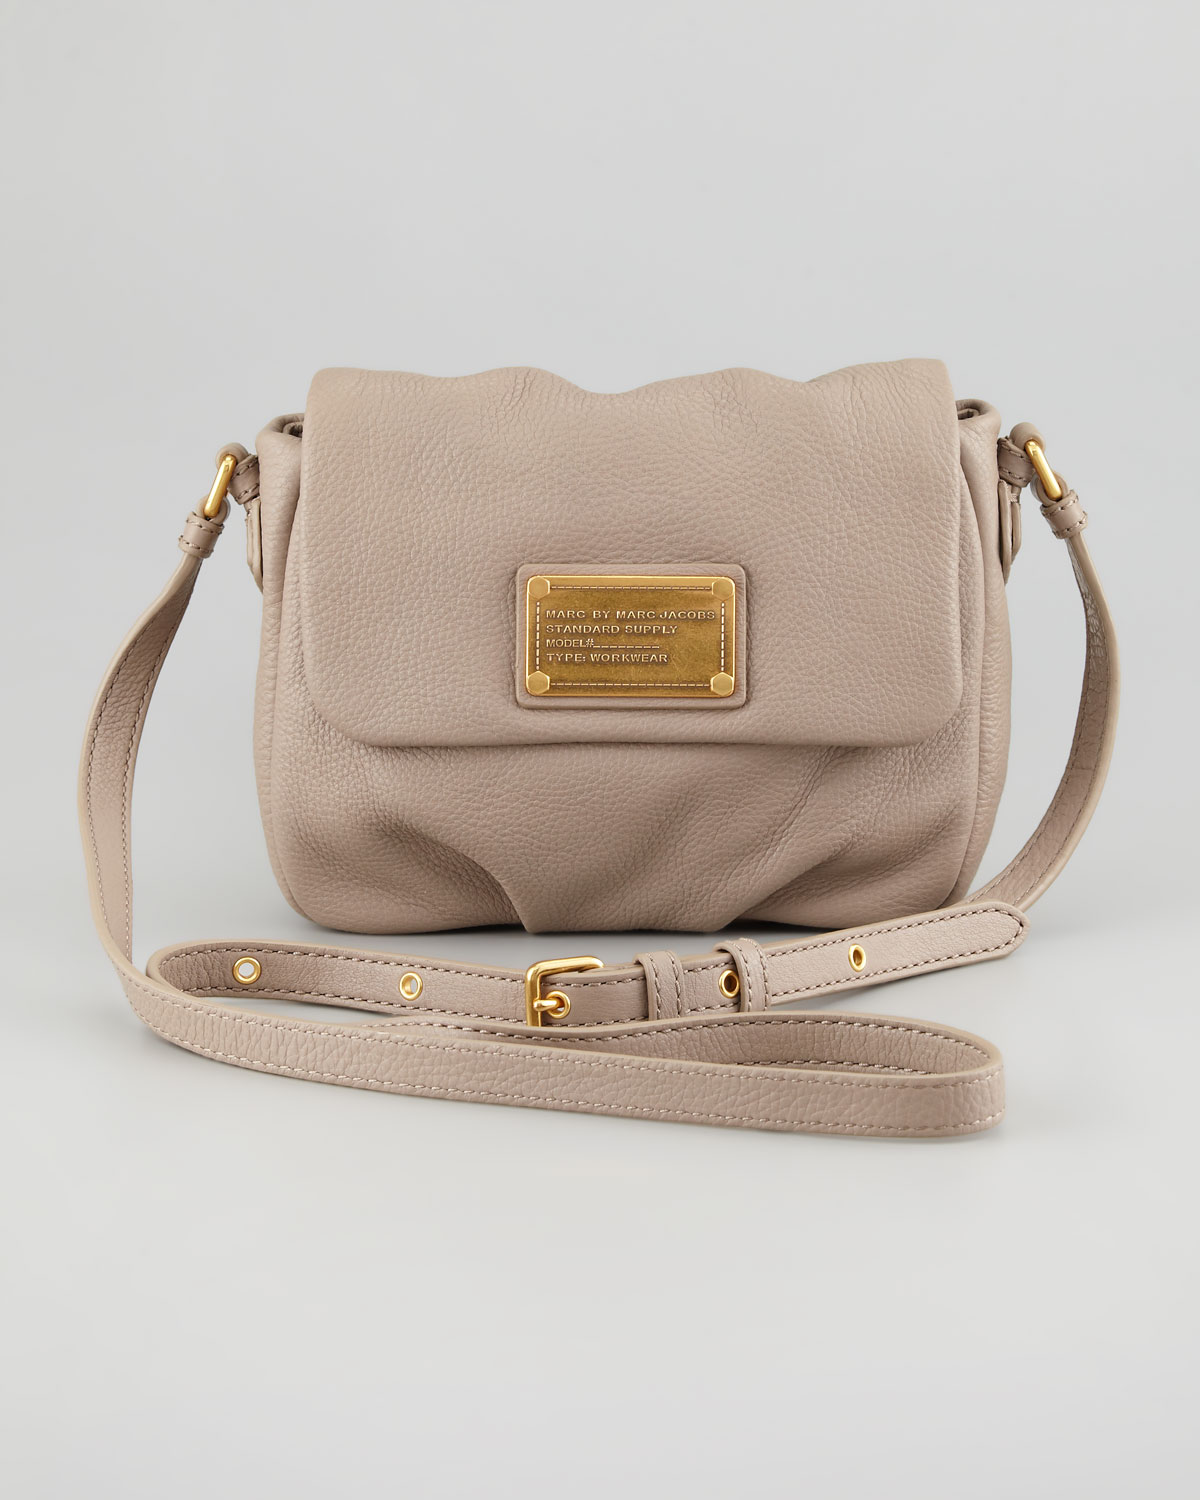 f05691417ab2 Marc Jacobs Backpack Purse